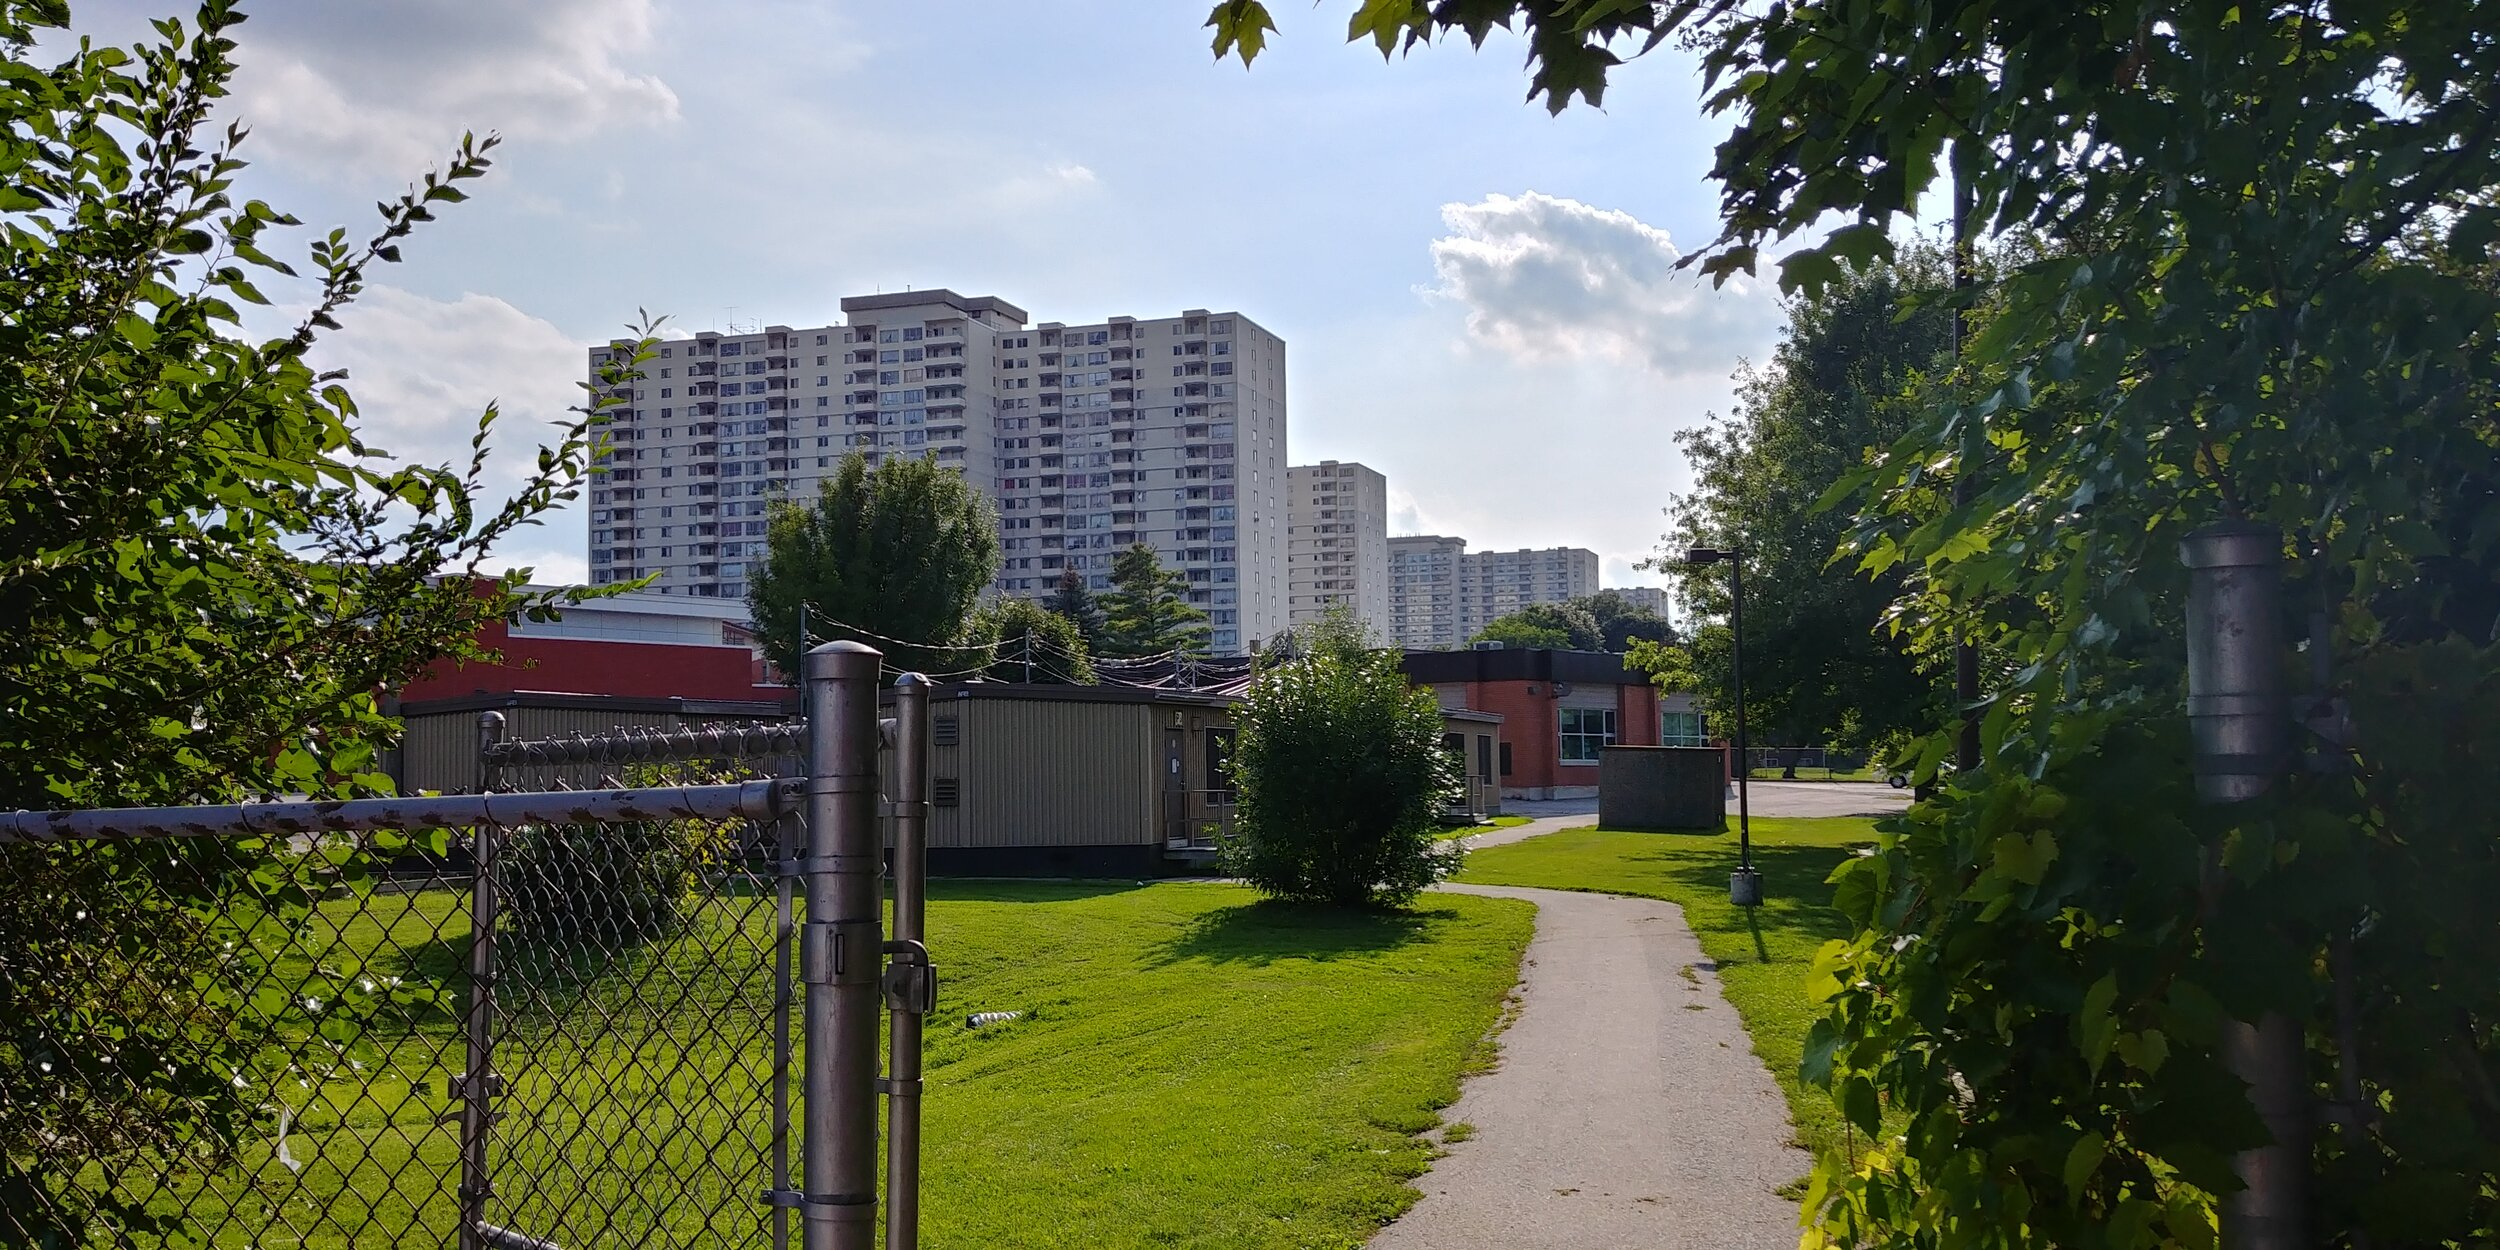 A view of the portables where Elissa teaches English. In the background are the condo buildings that comprise some of her neighbourhood.